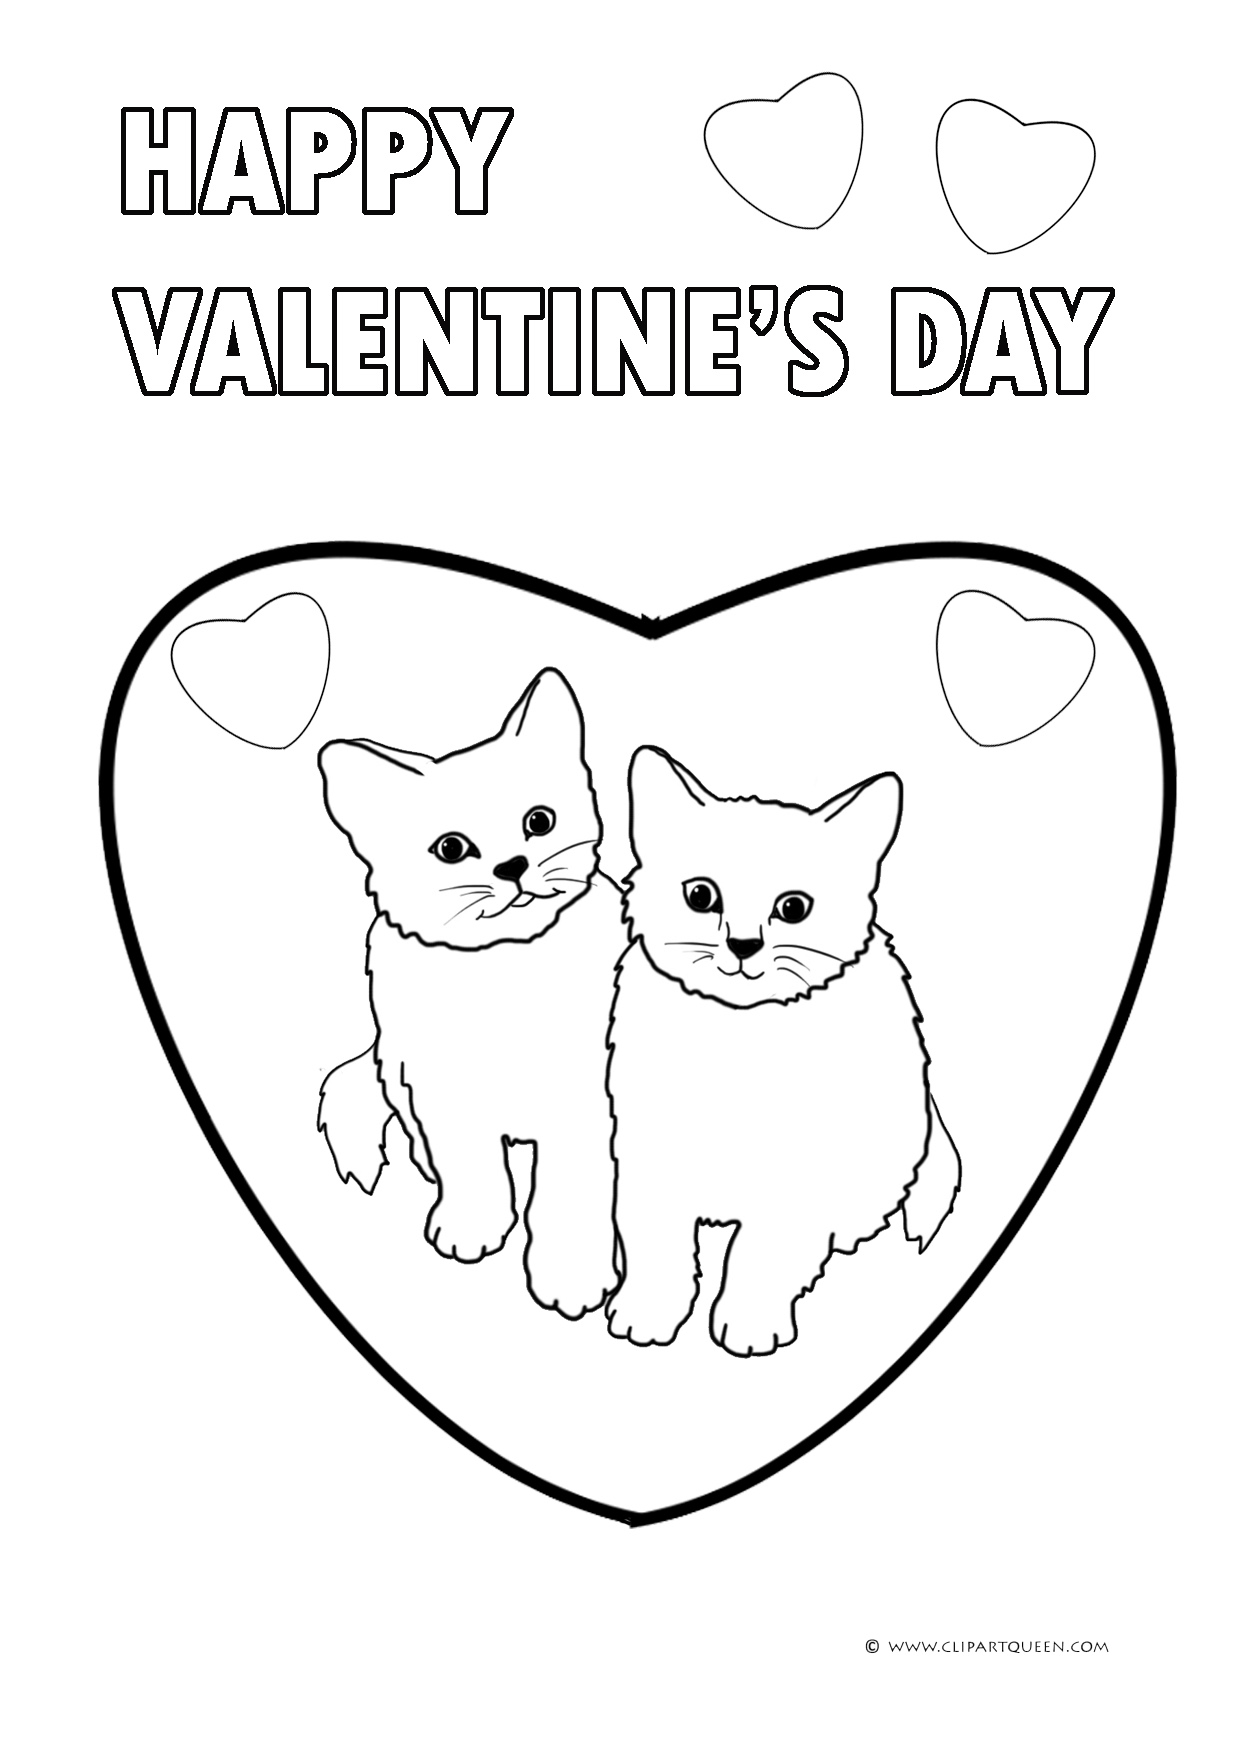 Clipart Valentines Day Cards At Getdrawings